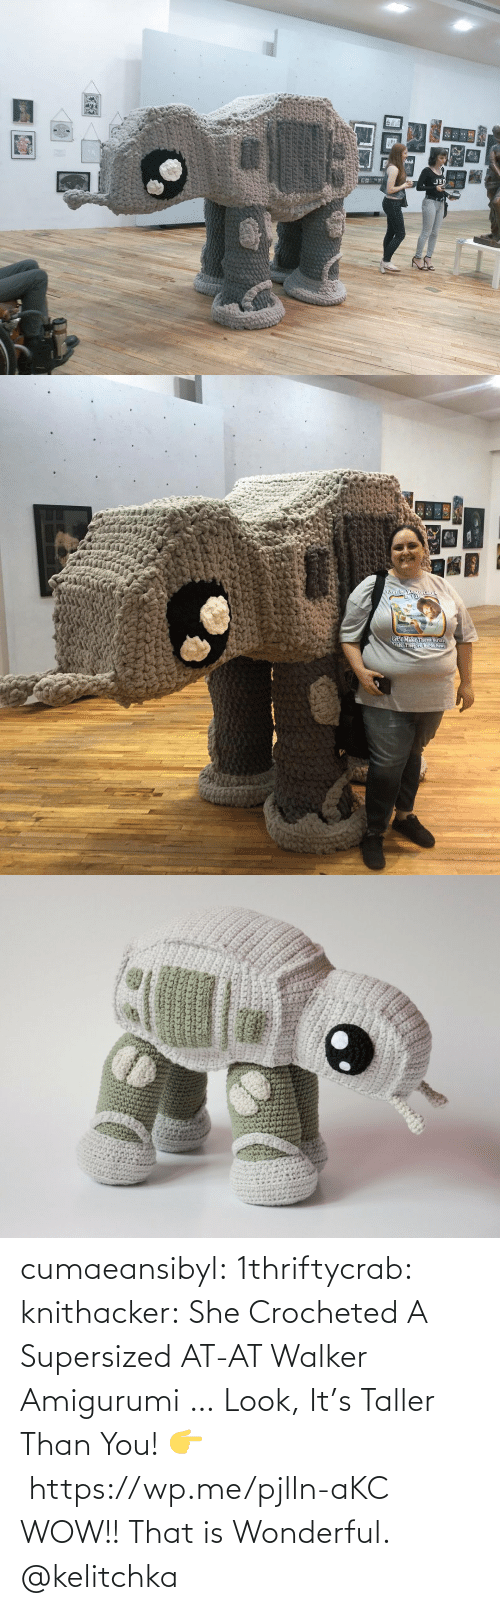 Than: cumaeansibyl: 1thriftycrab:  knithacker:  She Crocheted A Supersized AT-AT Walker Amigurumi … Look, It's Taller Than You! 👉 https://wp.me/pjlln-aKC  WOW!! That is Wonderful.   @kelitchka